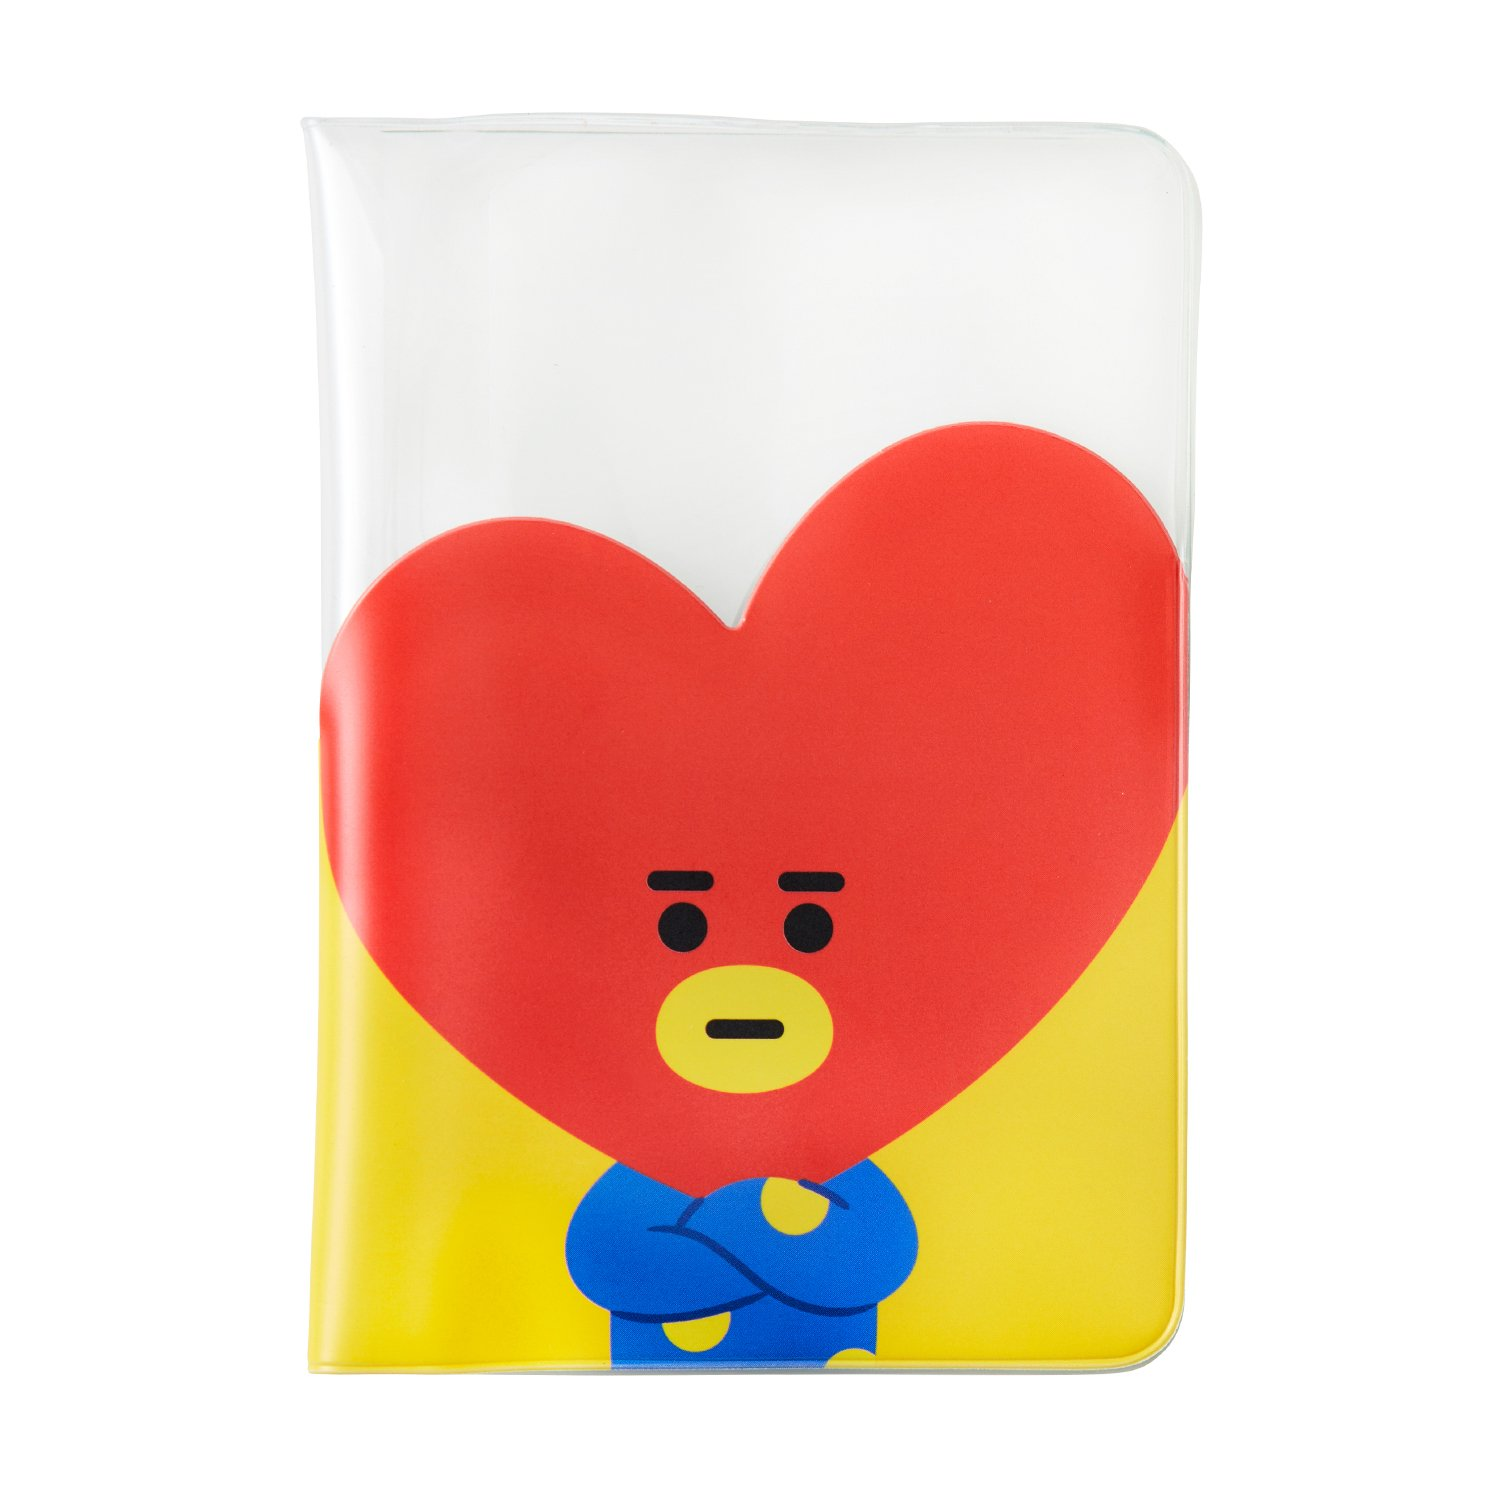 BT21 Official BTS Merchandise by Line Friends - Character Passport Holder Cover (Designed by Bangtan Boys)